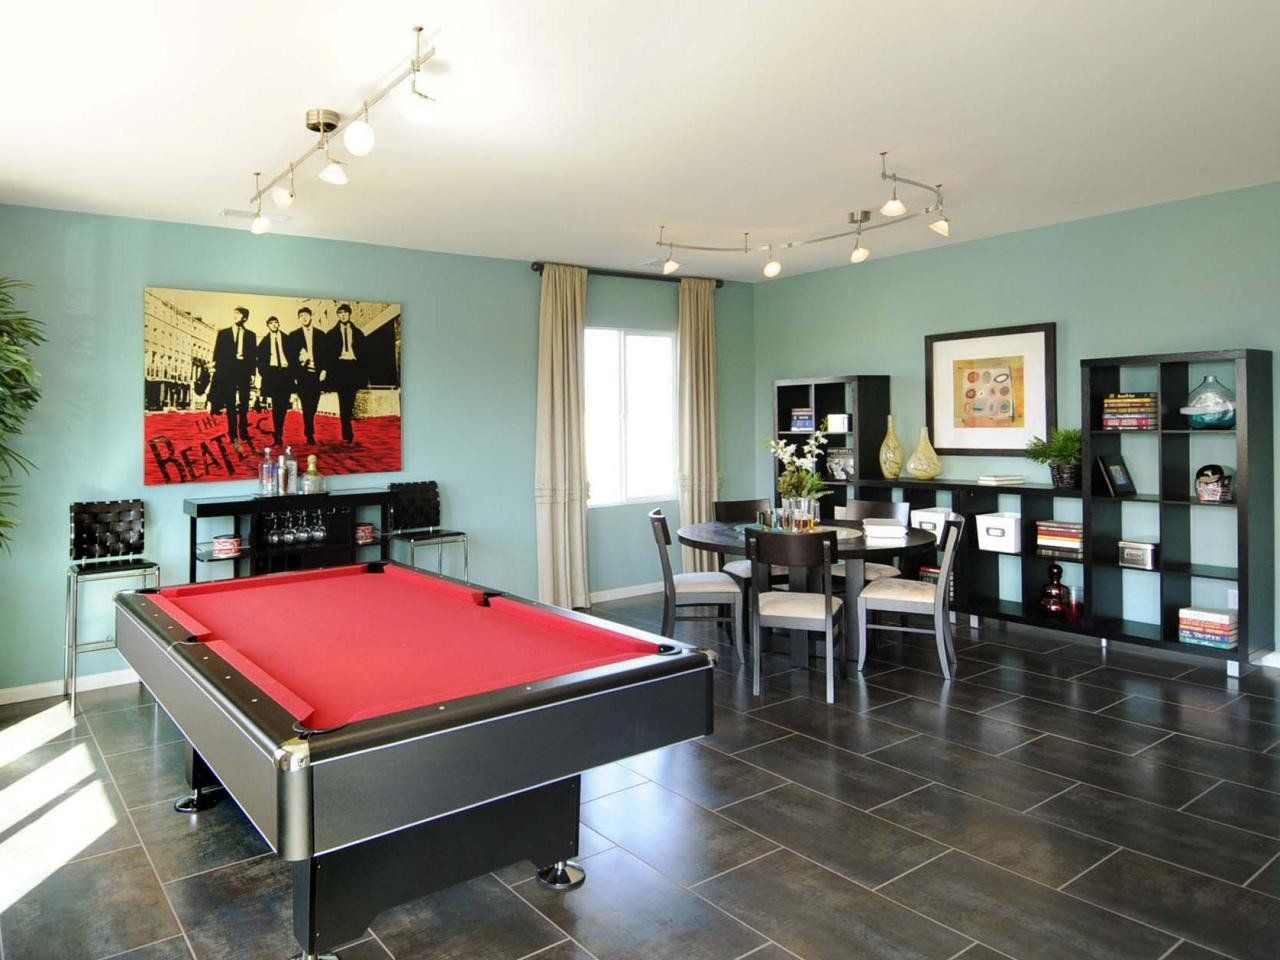 24 Beautiful Room Decor Games For Adults In 2020 Game Room Decor